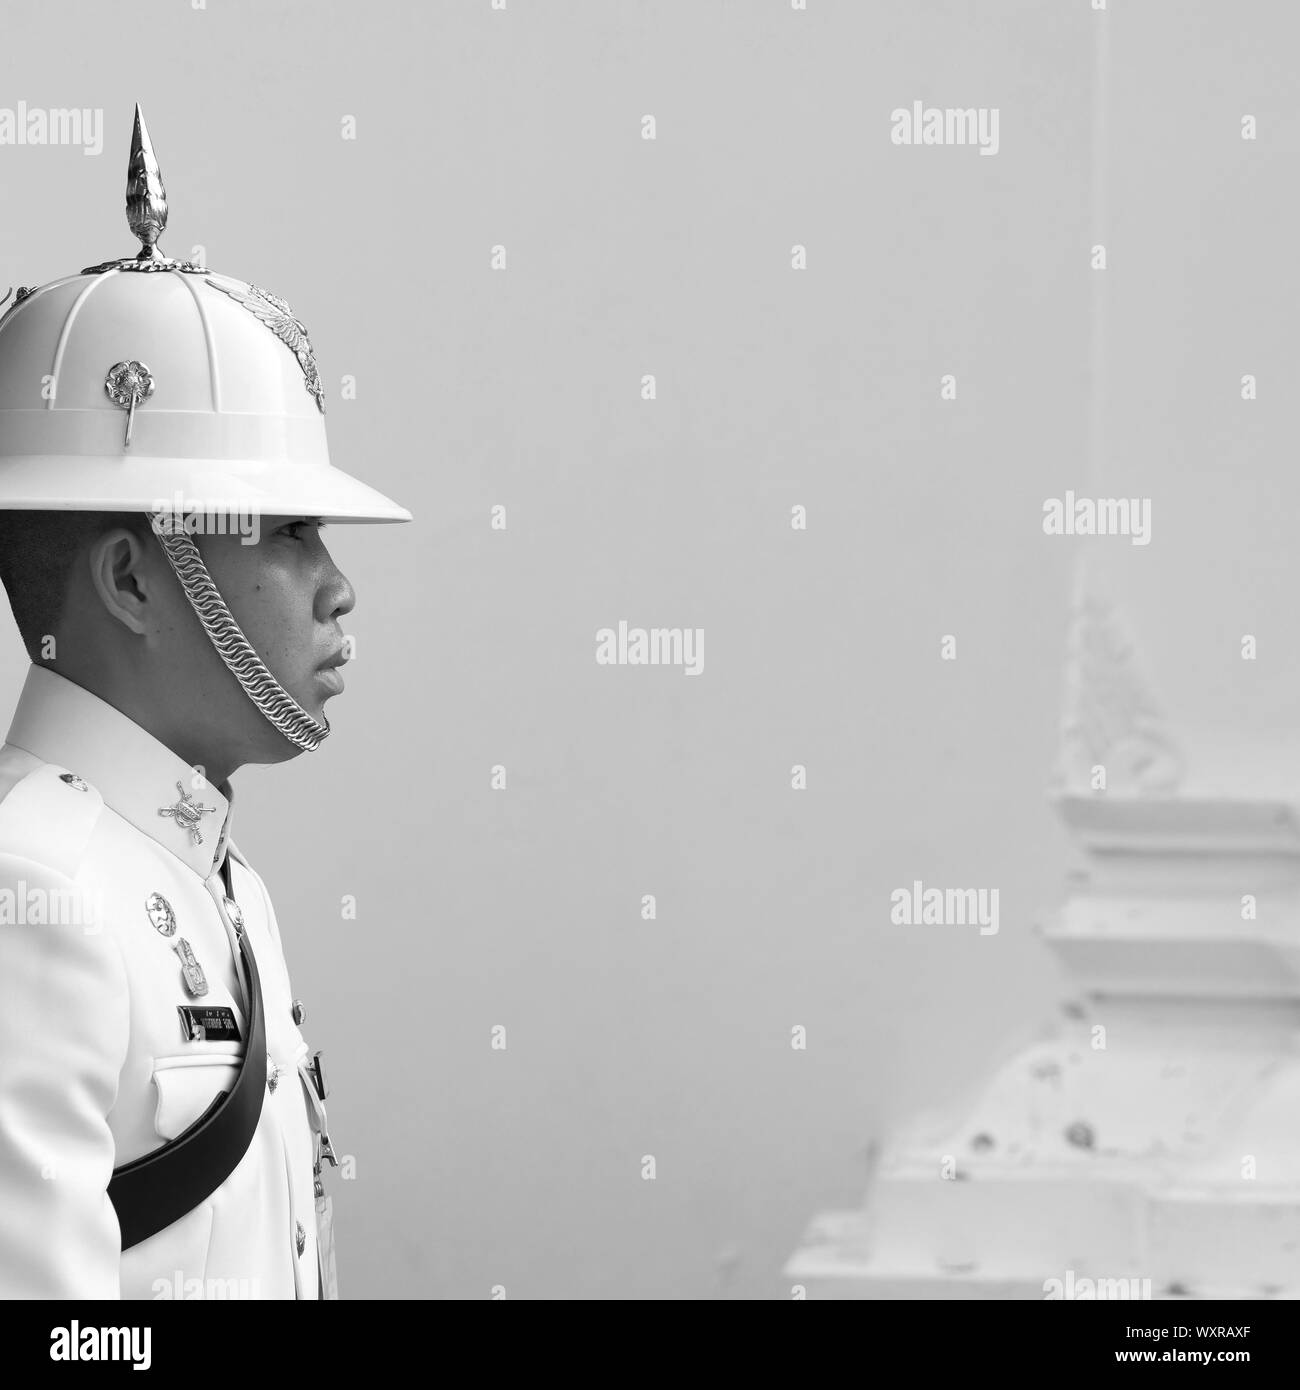 Bangkok / Thailand - Armed guards by the royal palace in Bangkok. Black and white photo. Stock Photo